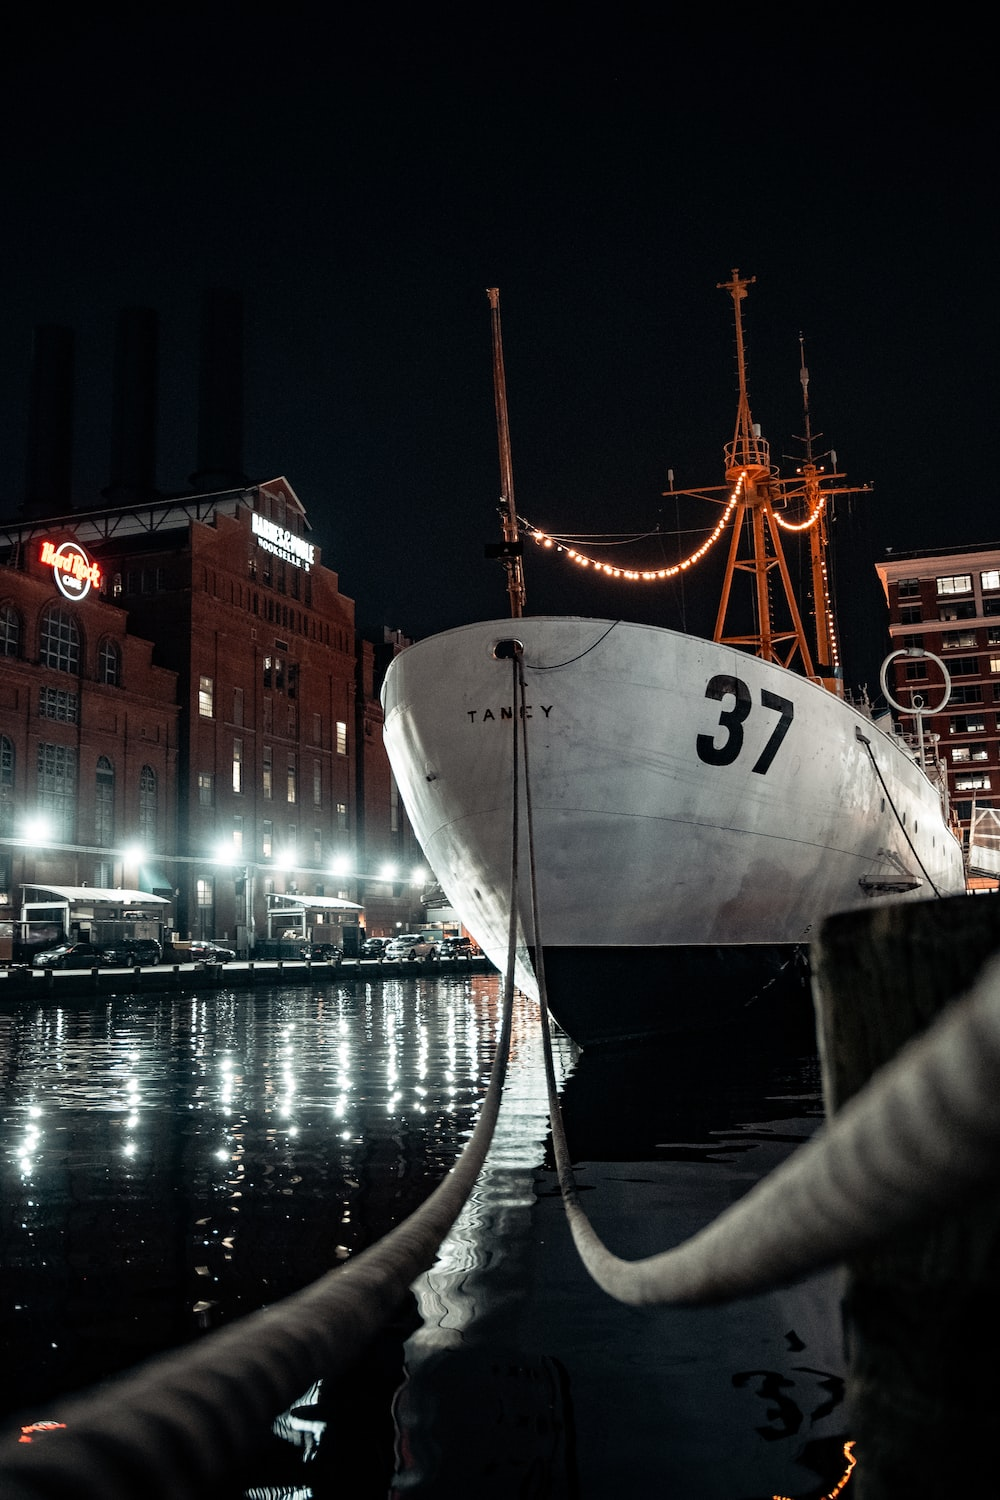 white and red ship on dock during night time